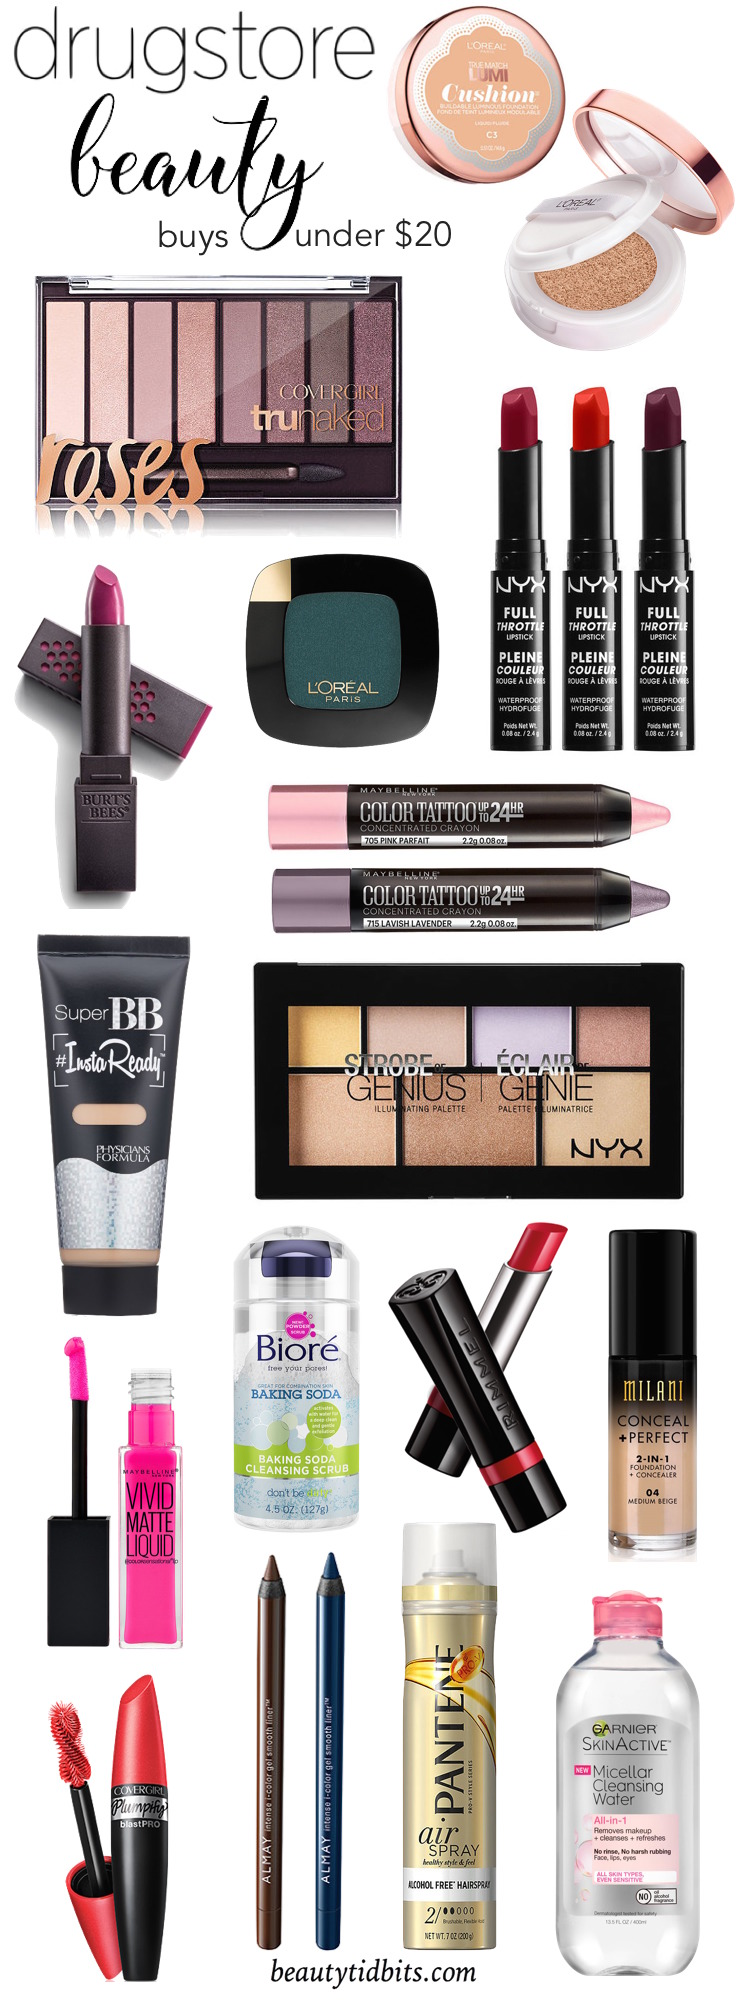 Amp up your look for the new year with these exciting new drugstore beauty products - all under $  20!